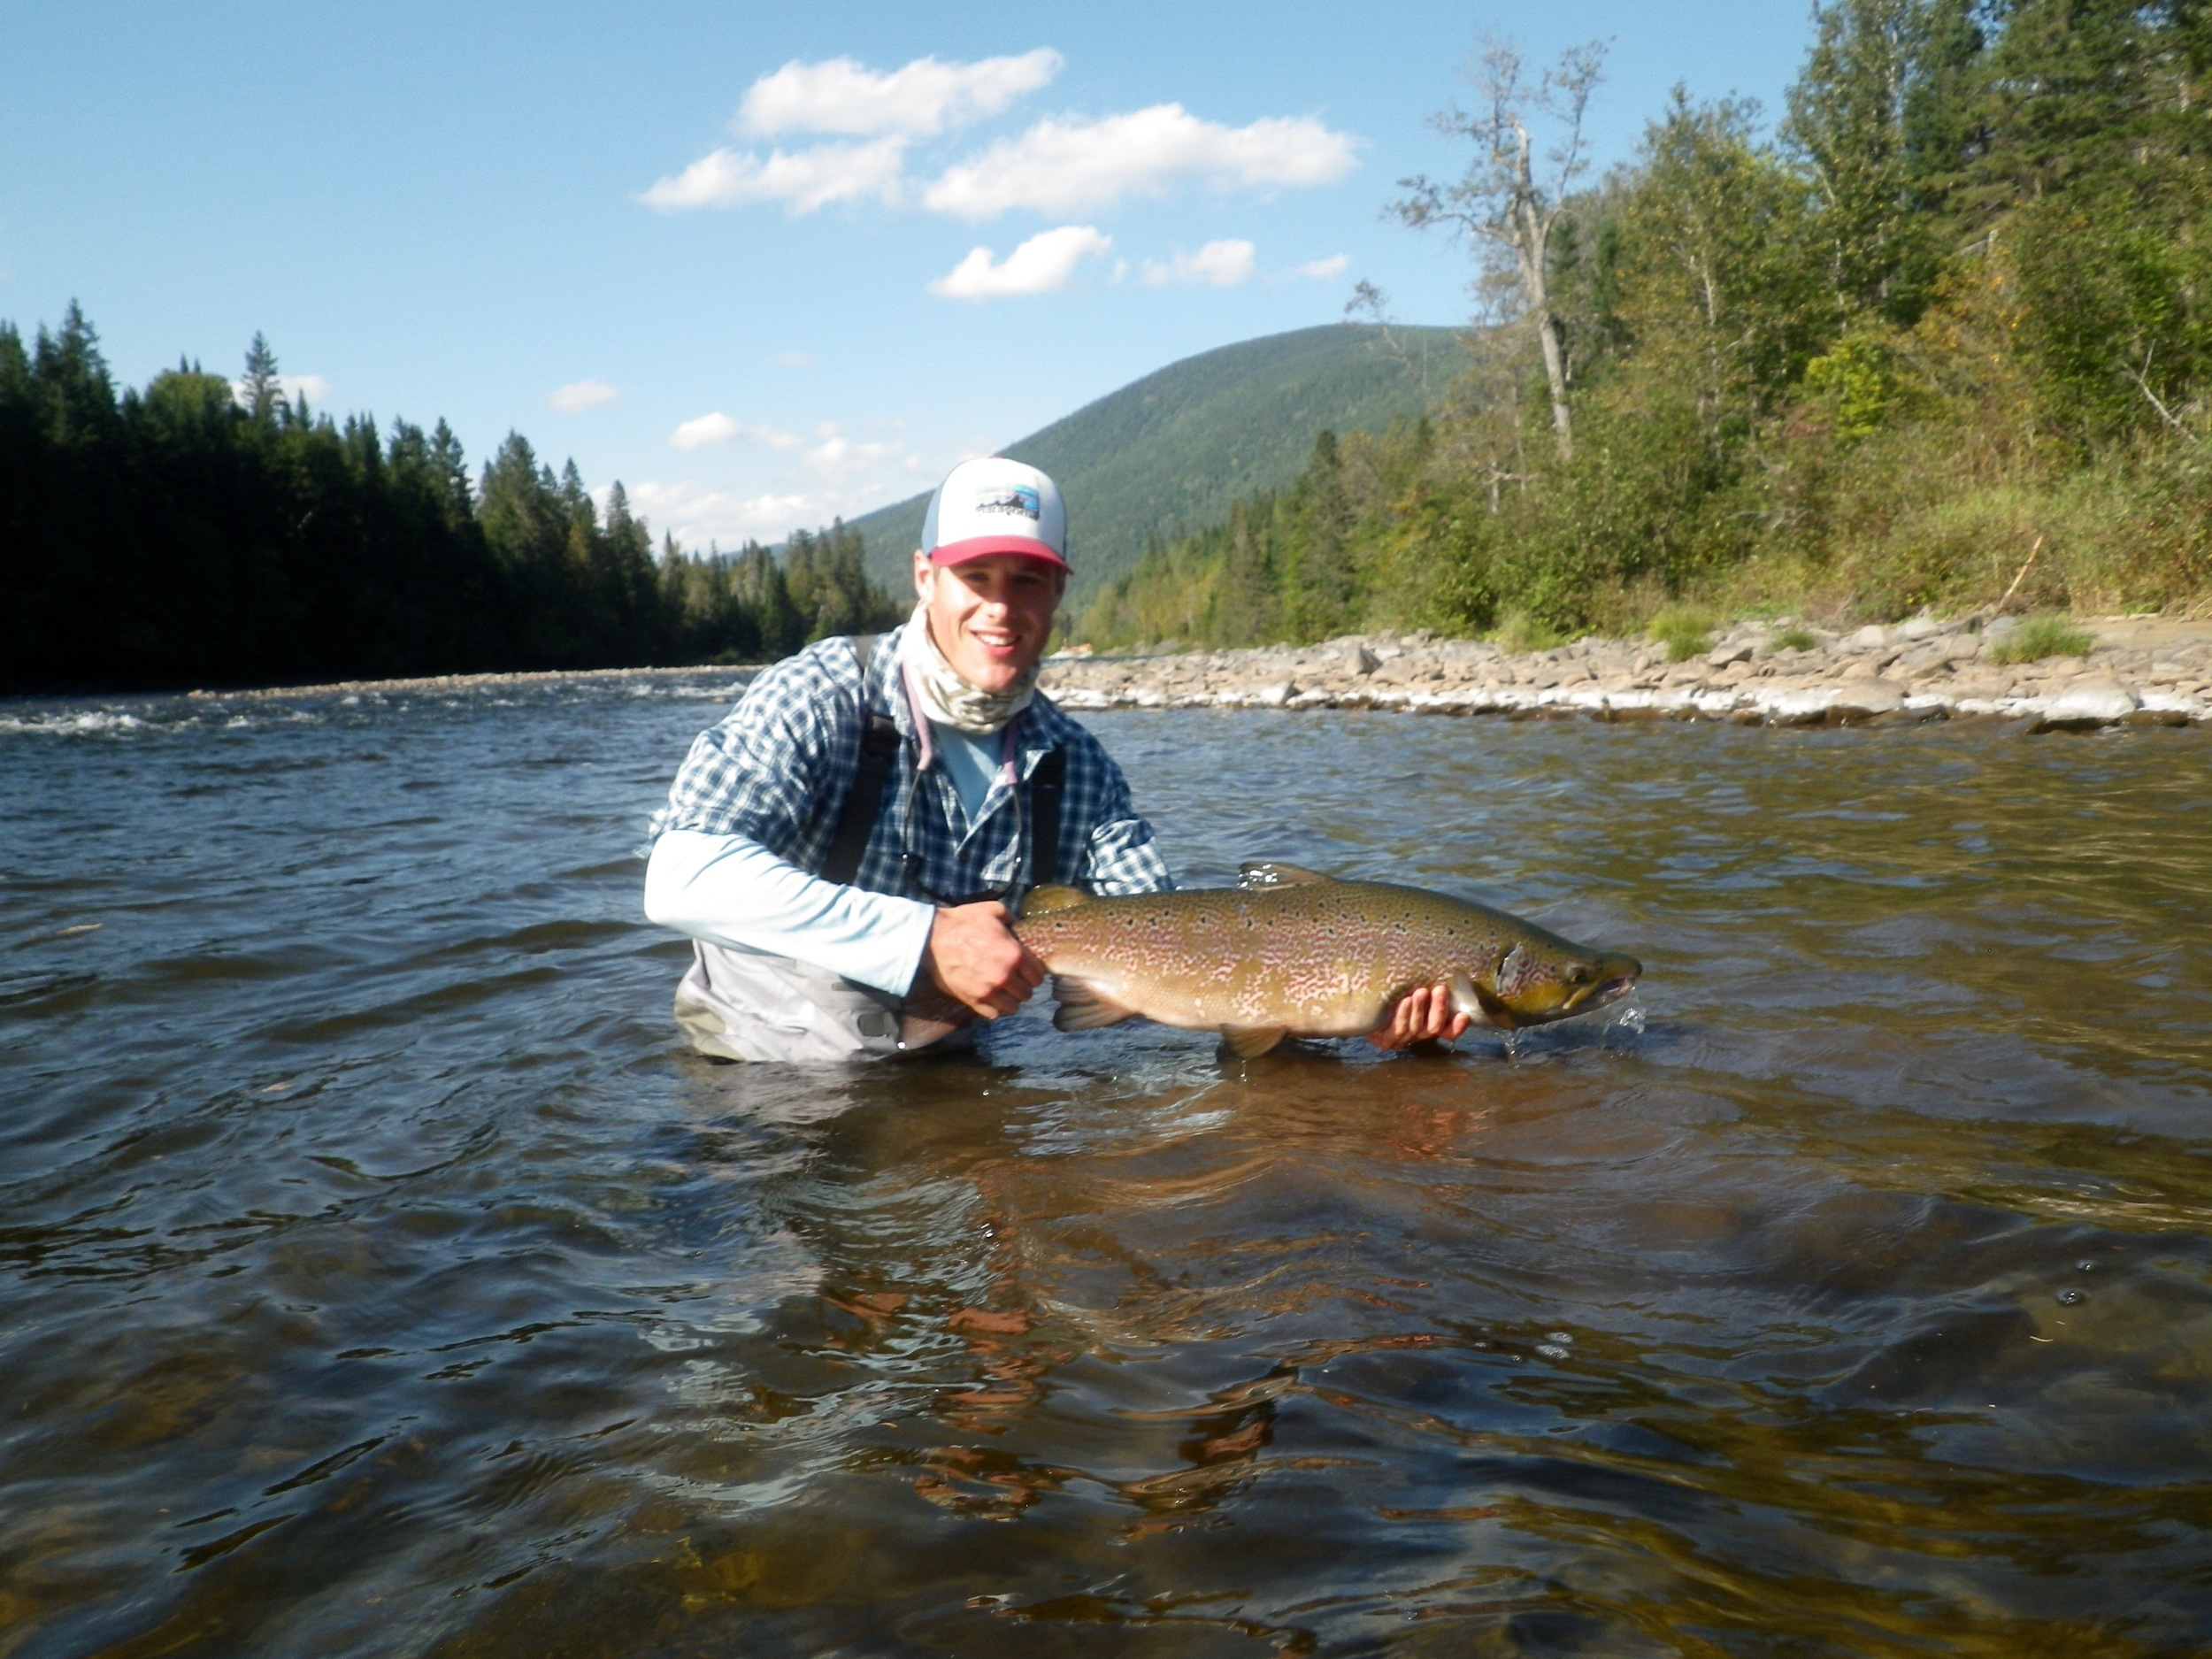 Michael Blades with his first Grand Cascapedia Salmon of 2015, Nice one Michael!